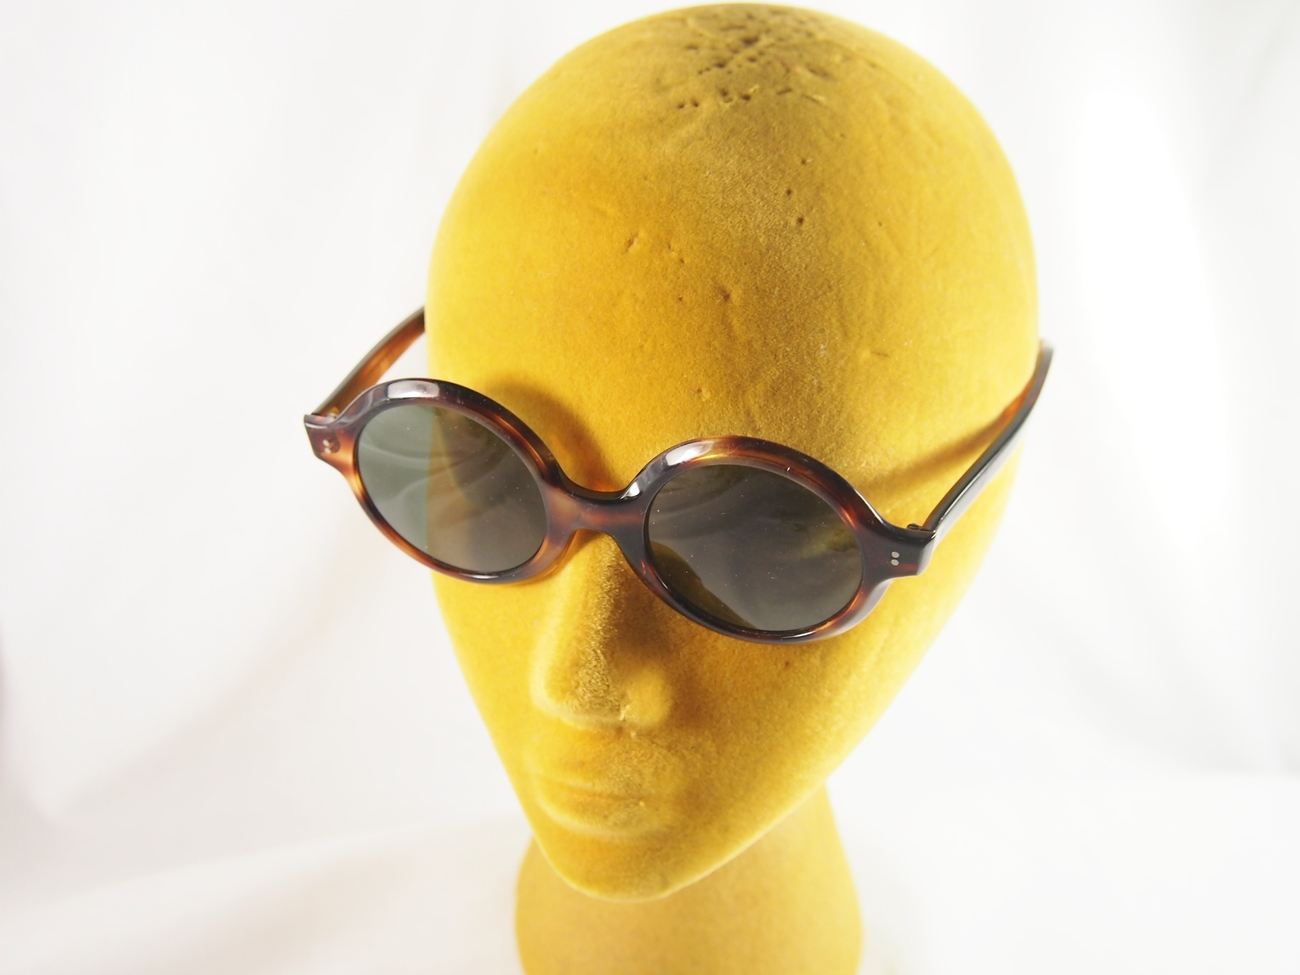 Vintage 60s Mod Ray Ban Sunglasses Bausch and Lomb